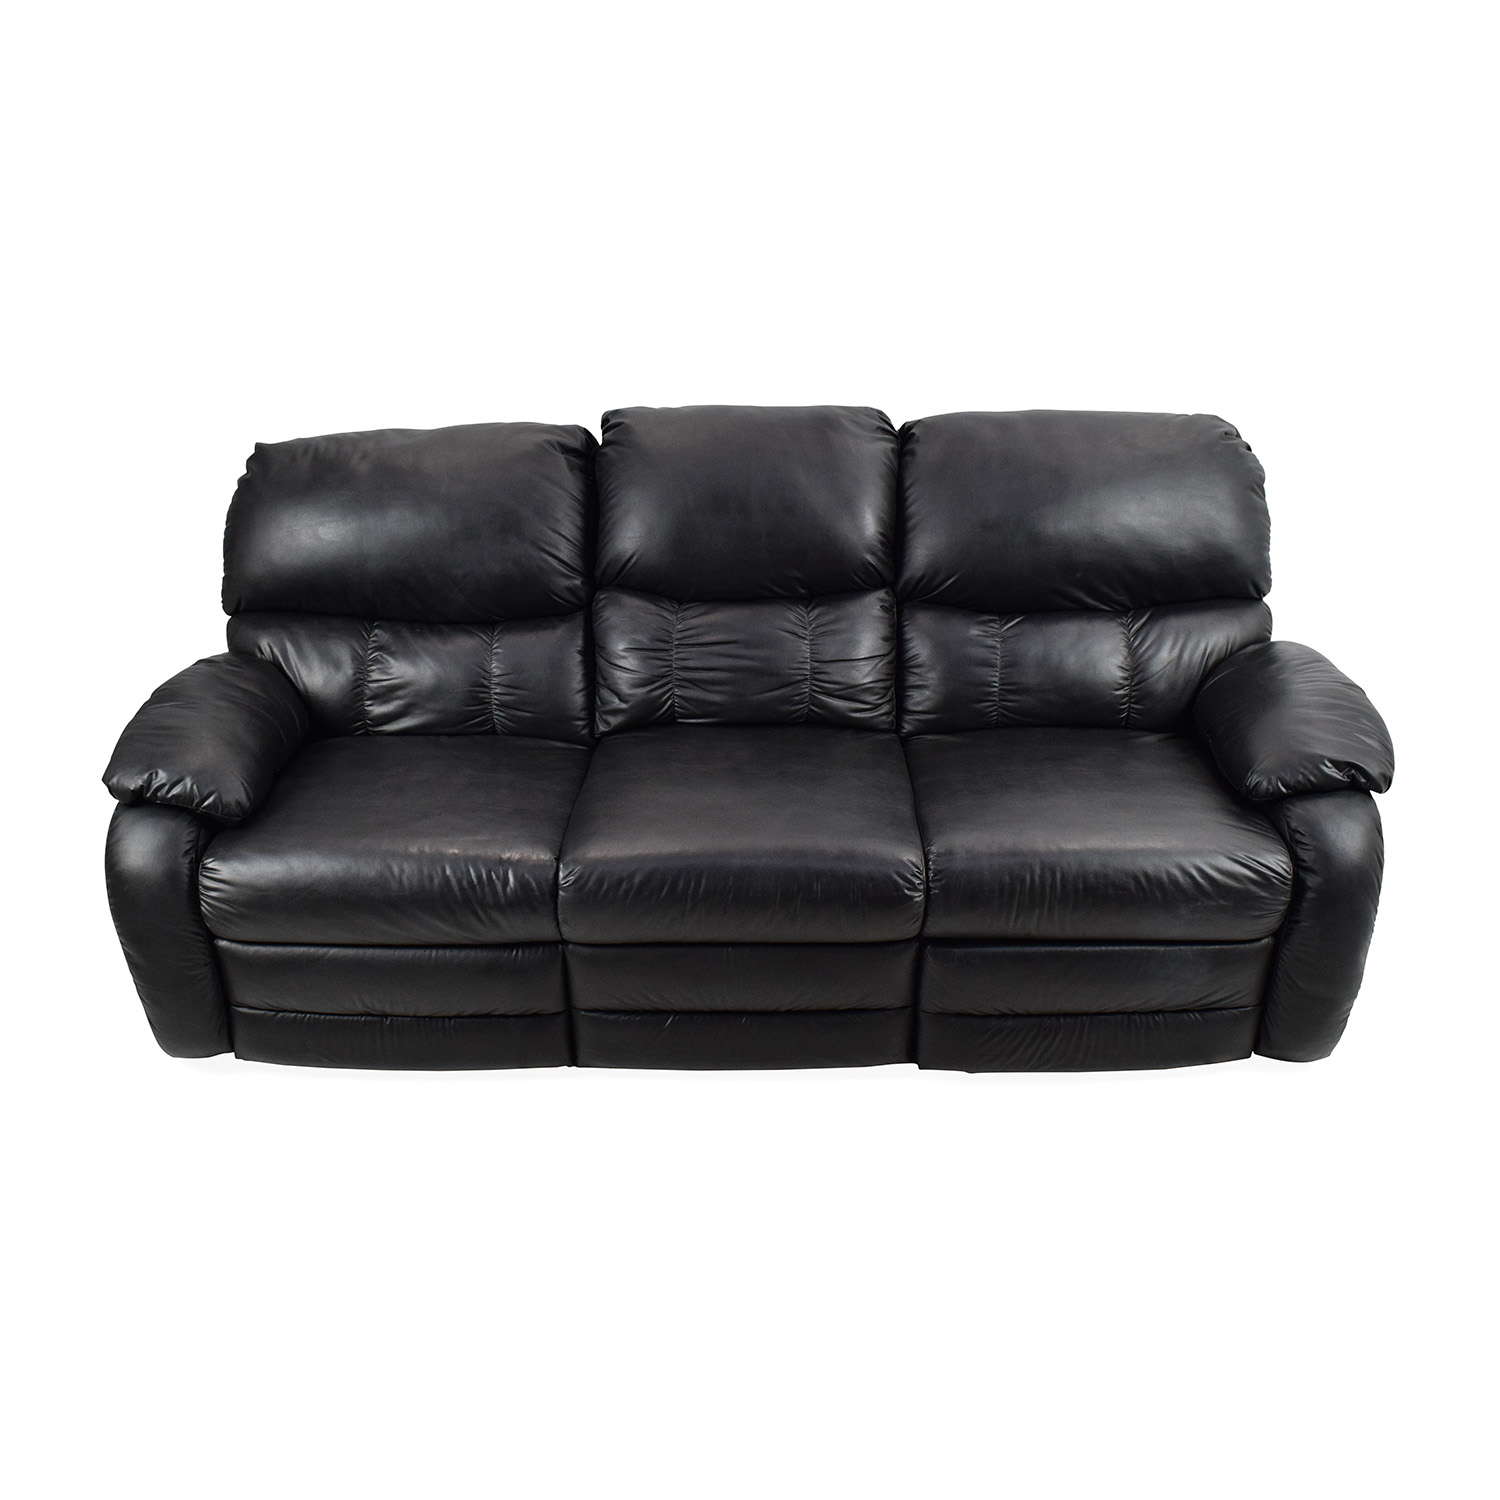 Black Leather Reclining Couch coupon